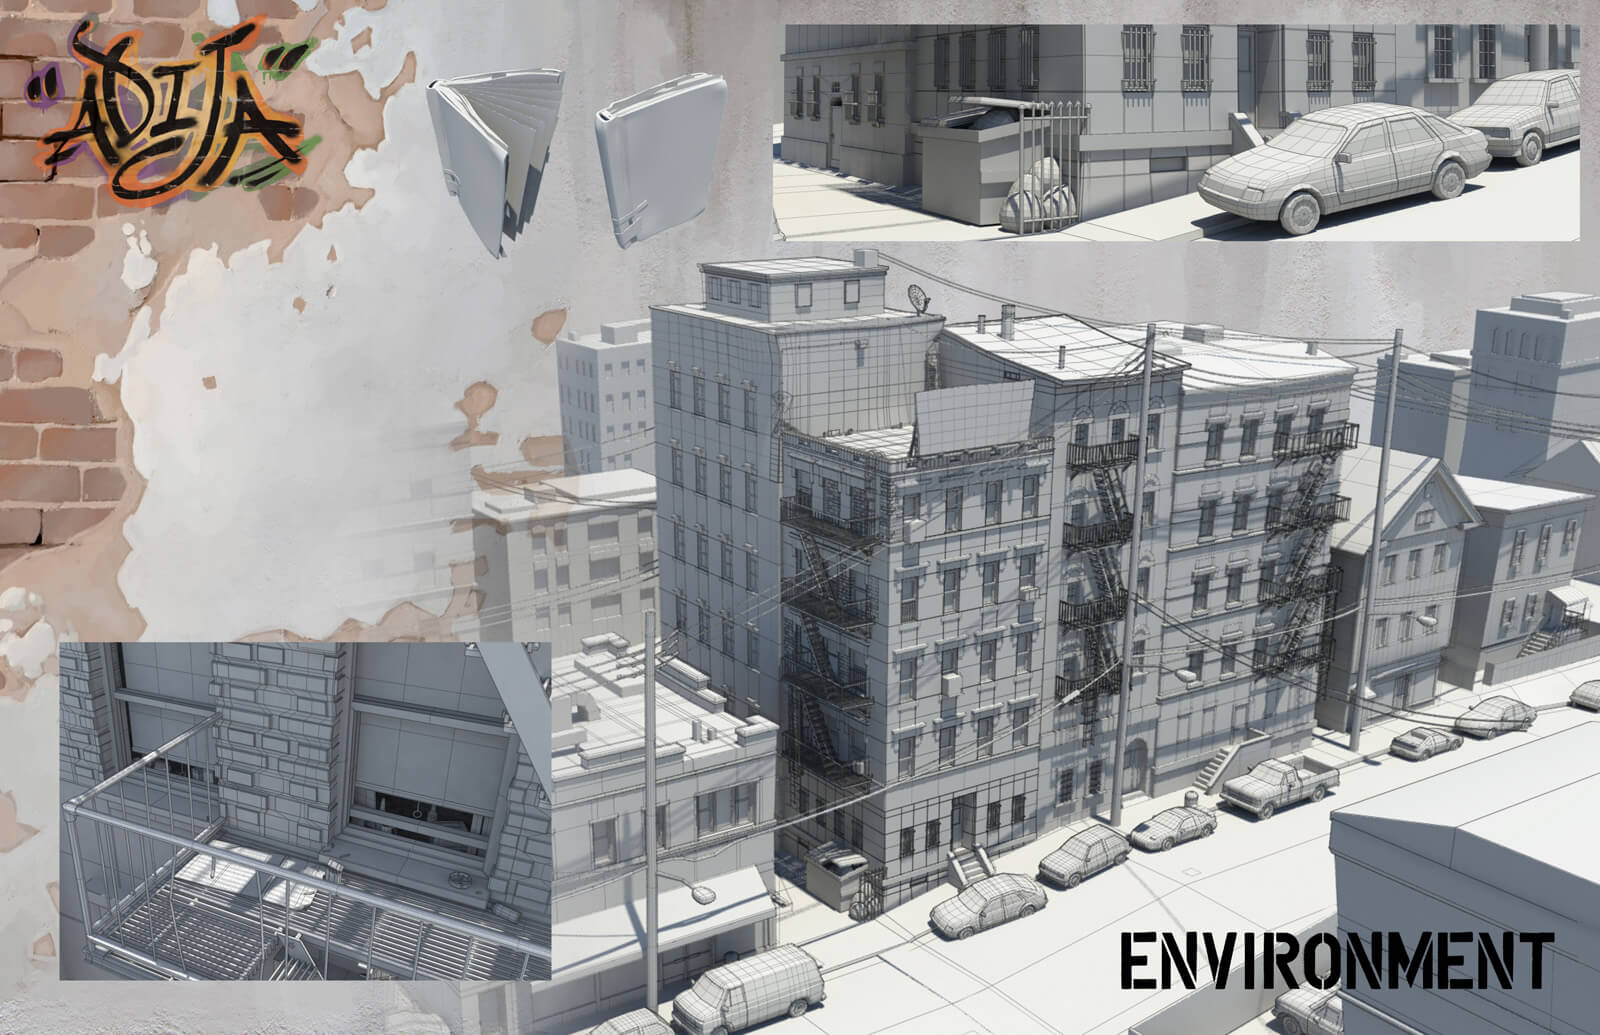 Environmental design sheet showing 3D wireframe models of the apartment exteriors in the film Adija